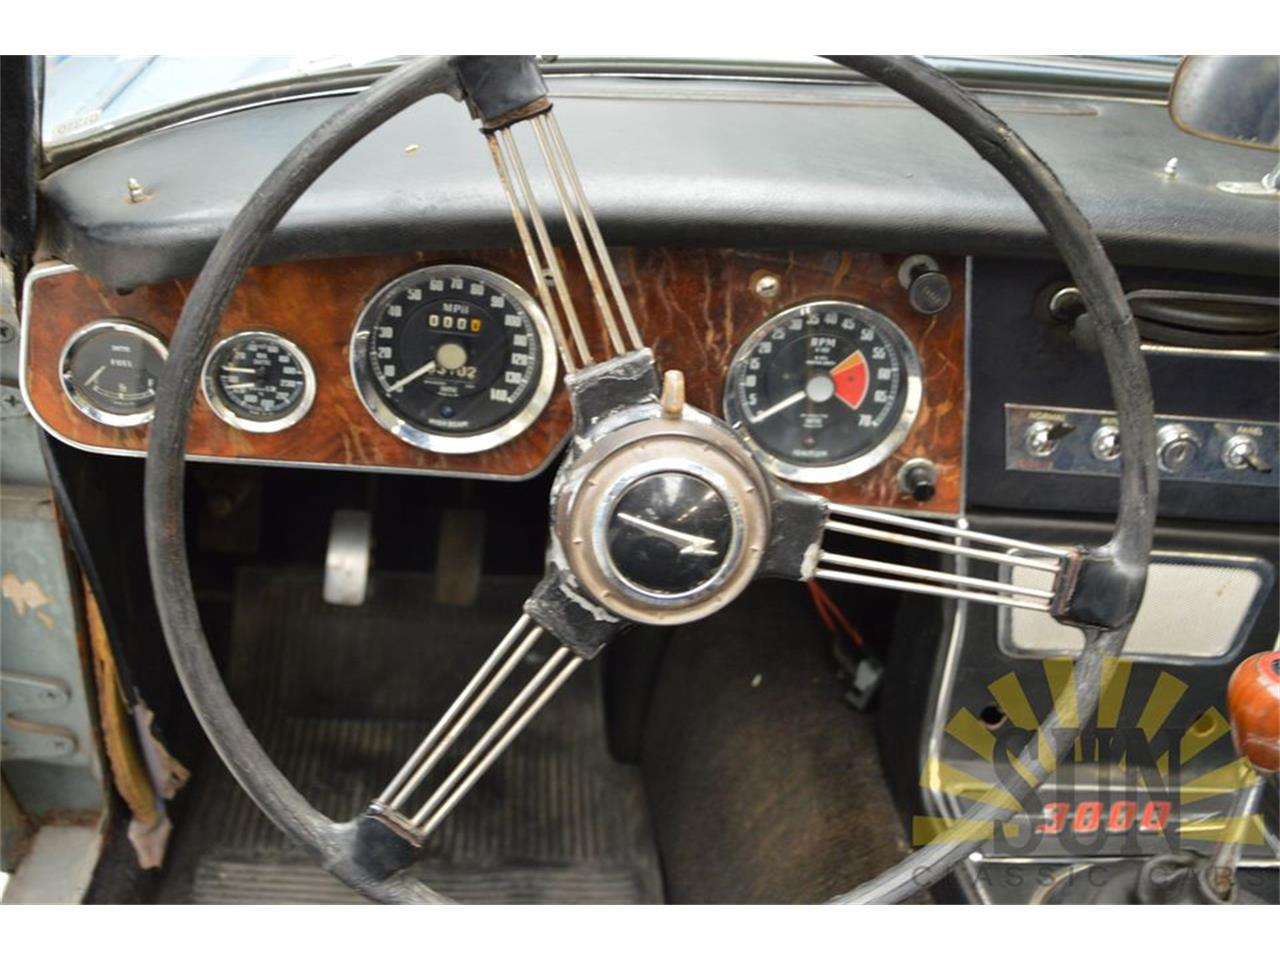 Large Picture of '64 Austin-Healey 3000 Mark III located in Waalwijk noord Brabant - $53,850.00 - PNX3